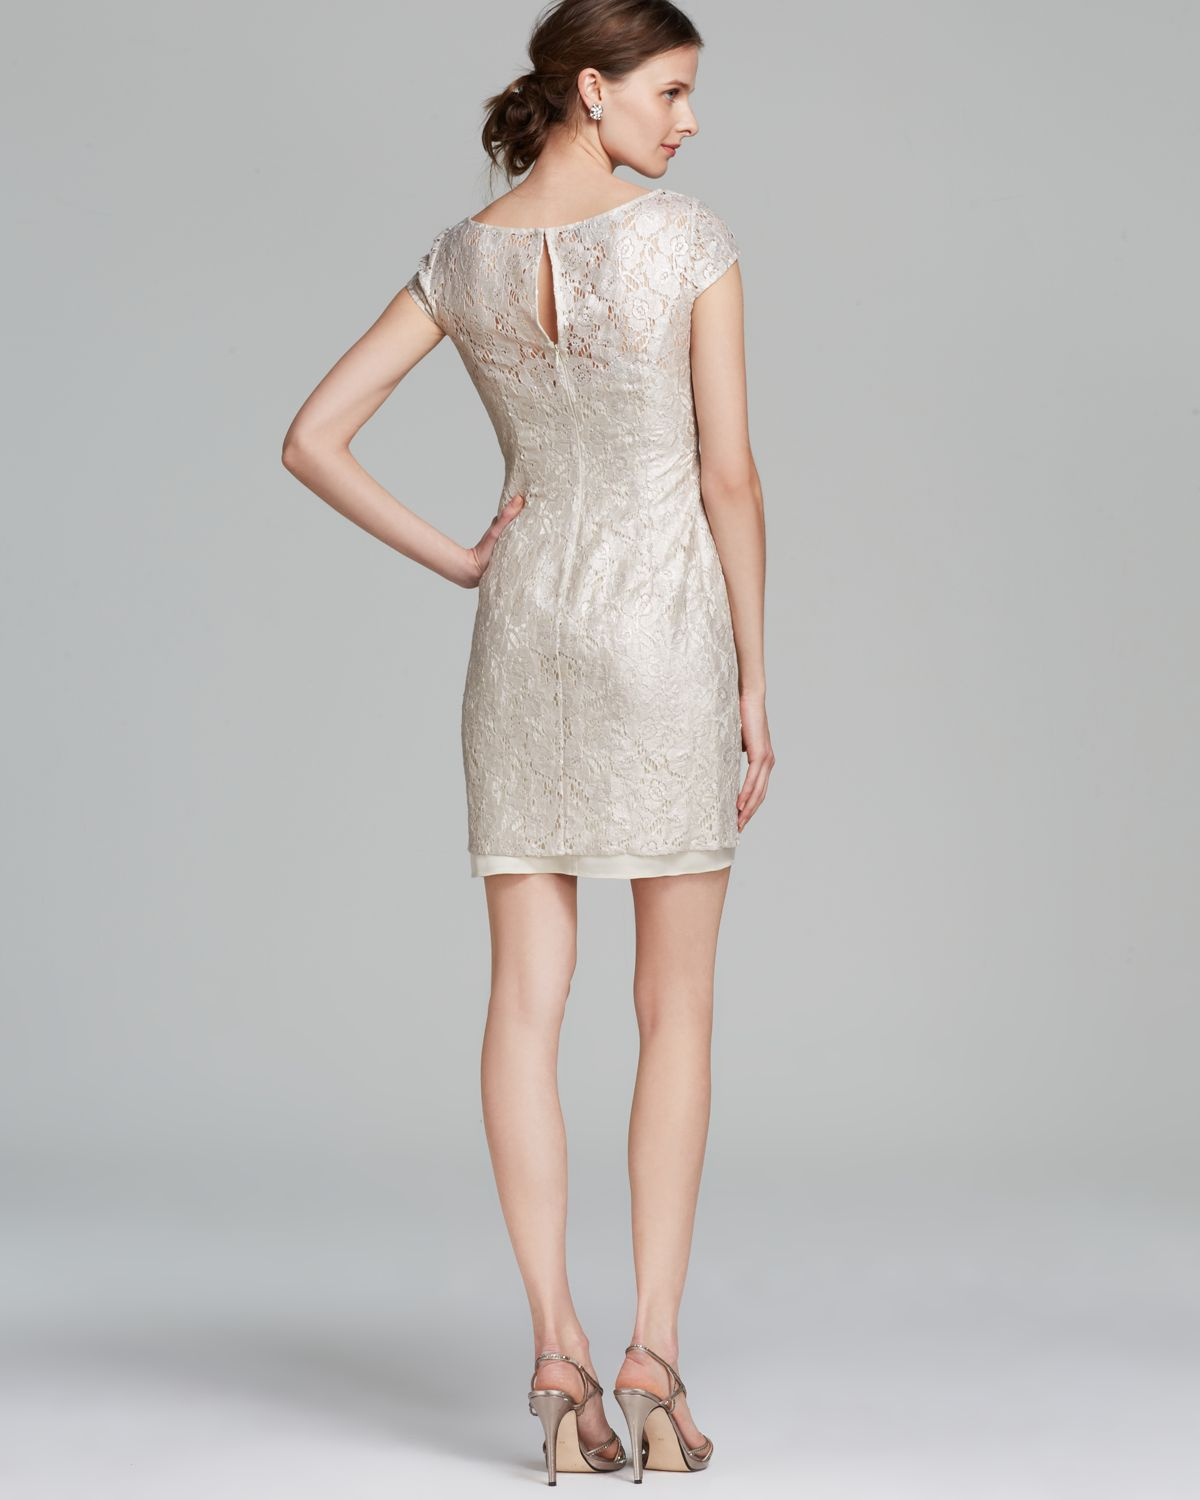 Lyst - Kay Unger Dress Cap Sleeve Metallic Lace Sheath in Natural